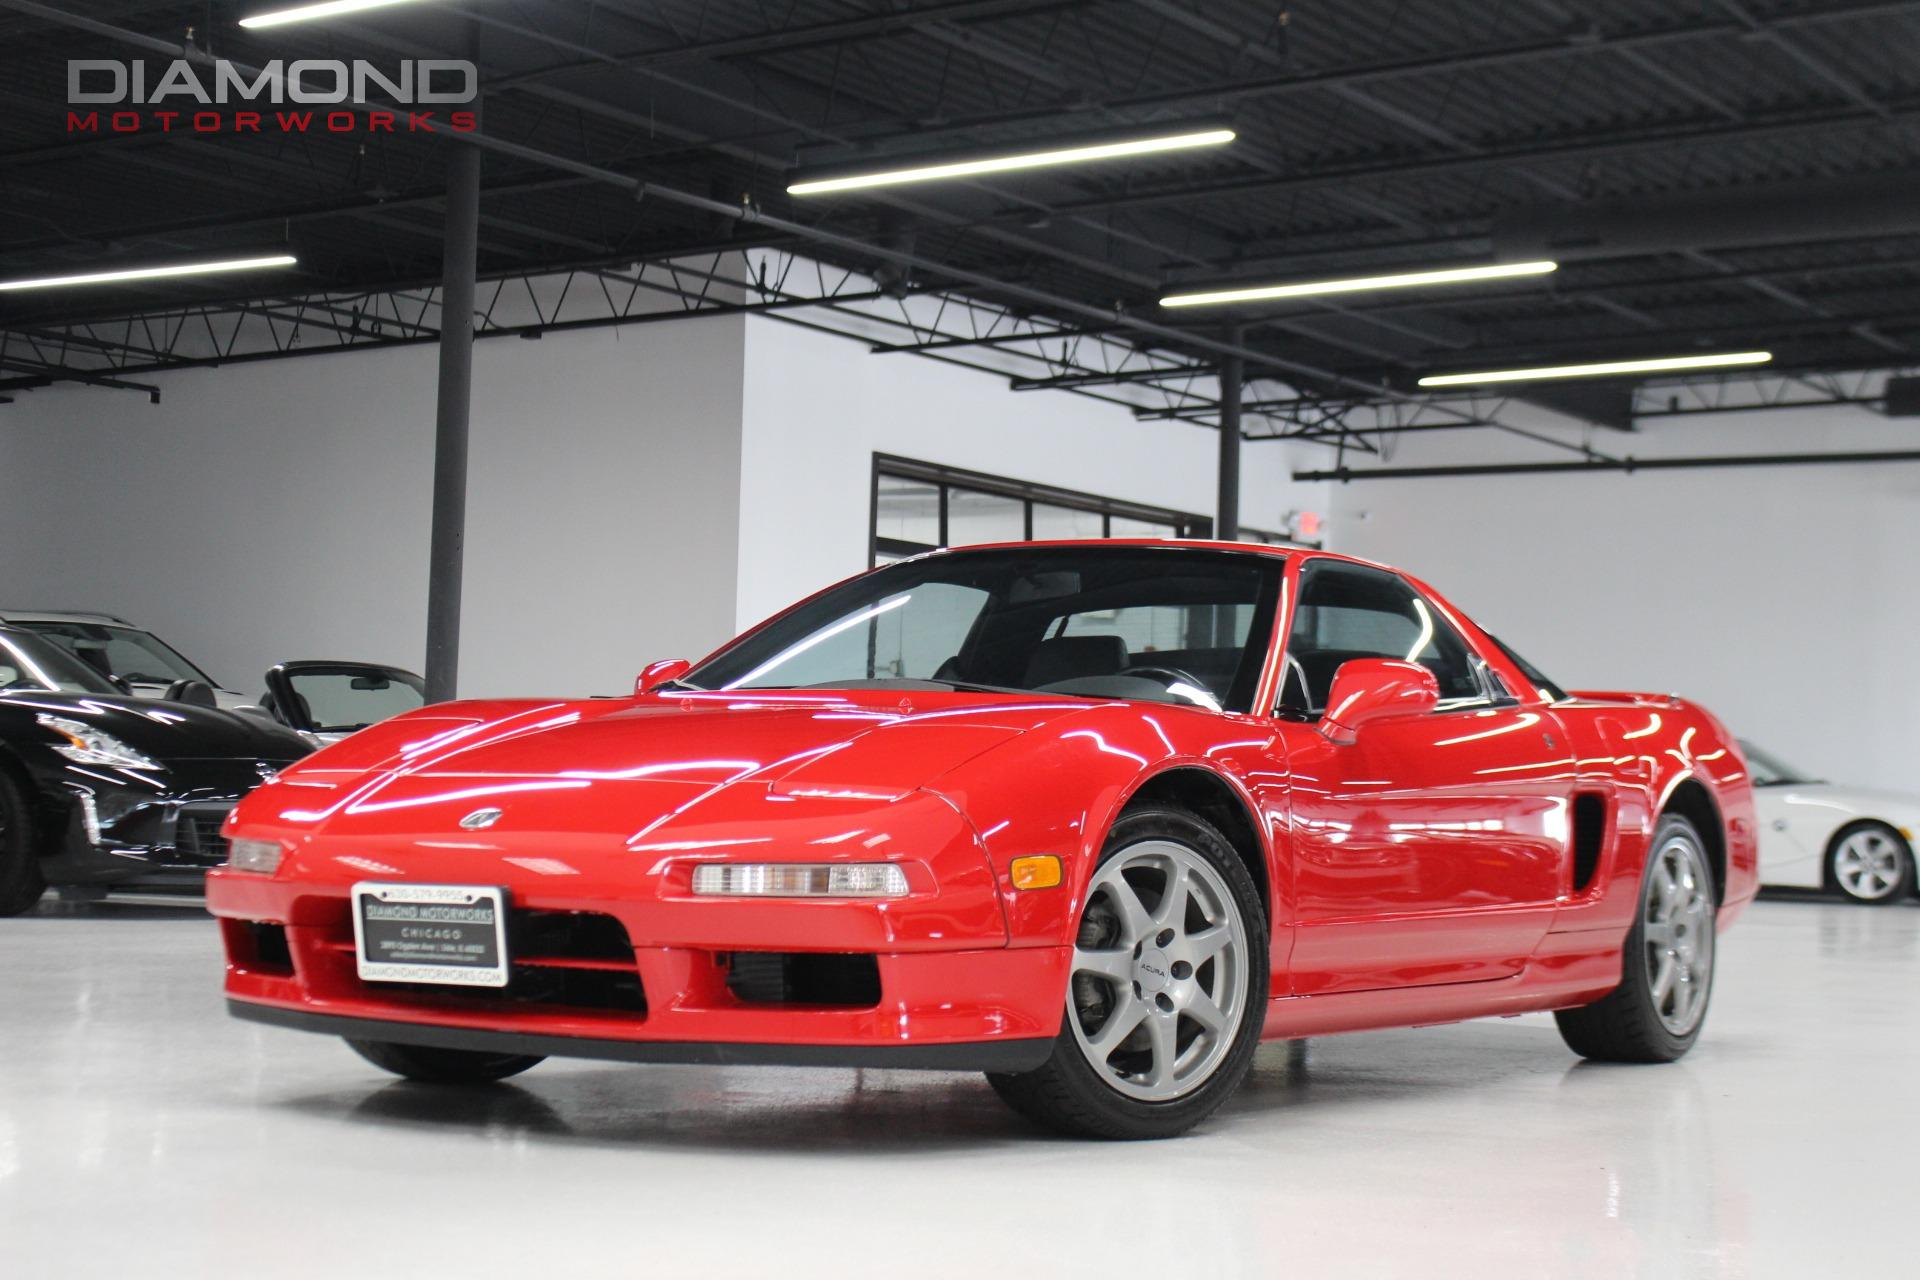 1996 acura nsx 2dr nsx t open top manual stock 000073 for sale near lisle il il acura dealer. Black Bedroom Furniture Sets. Home Design Ideas